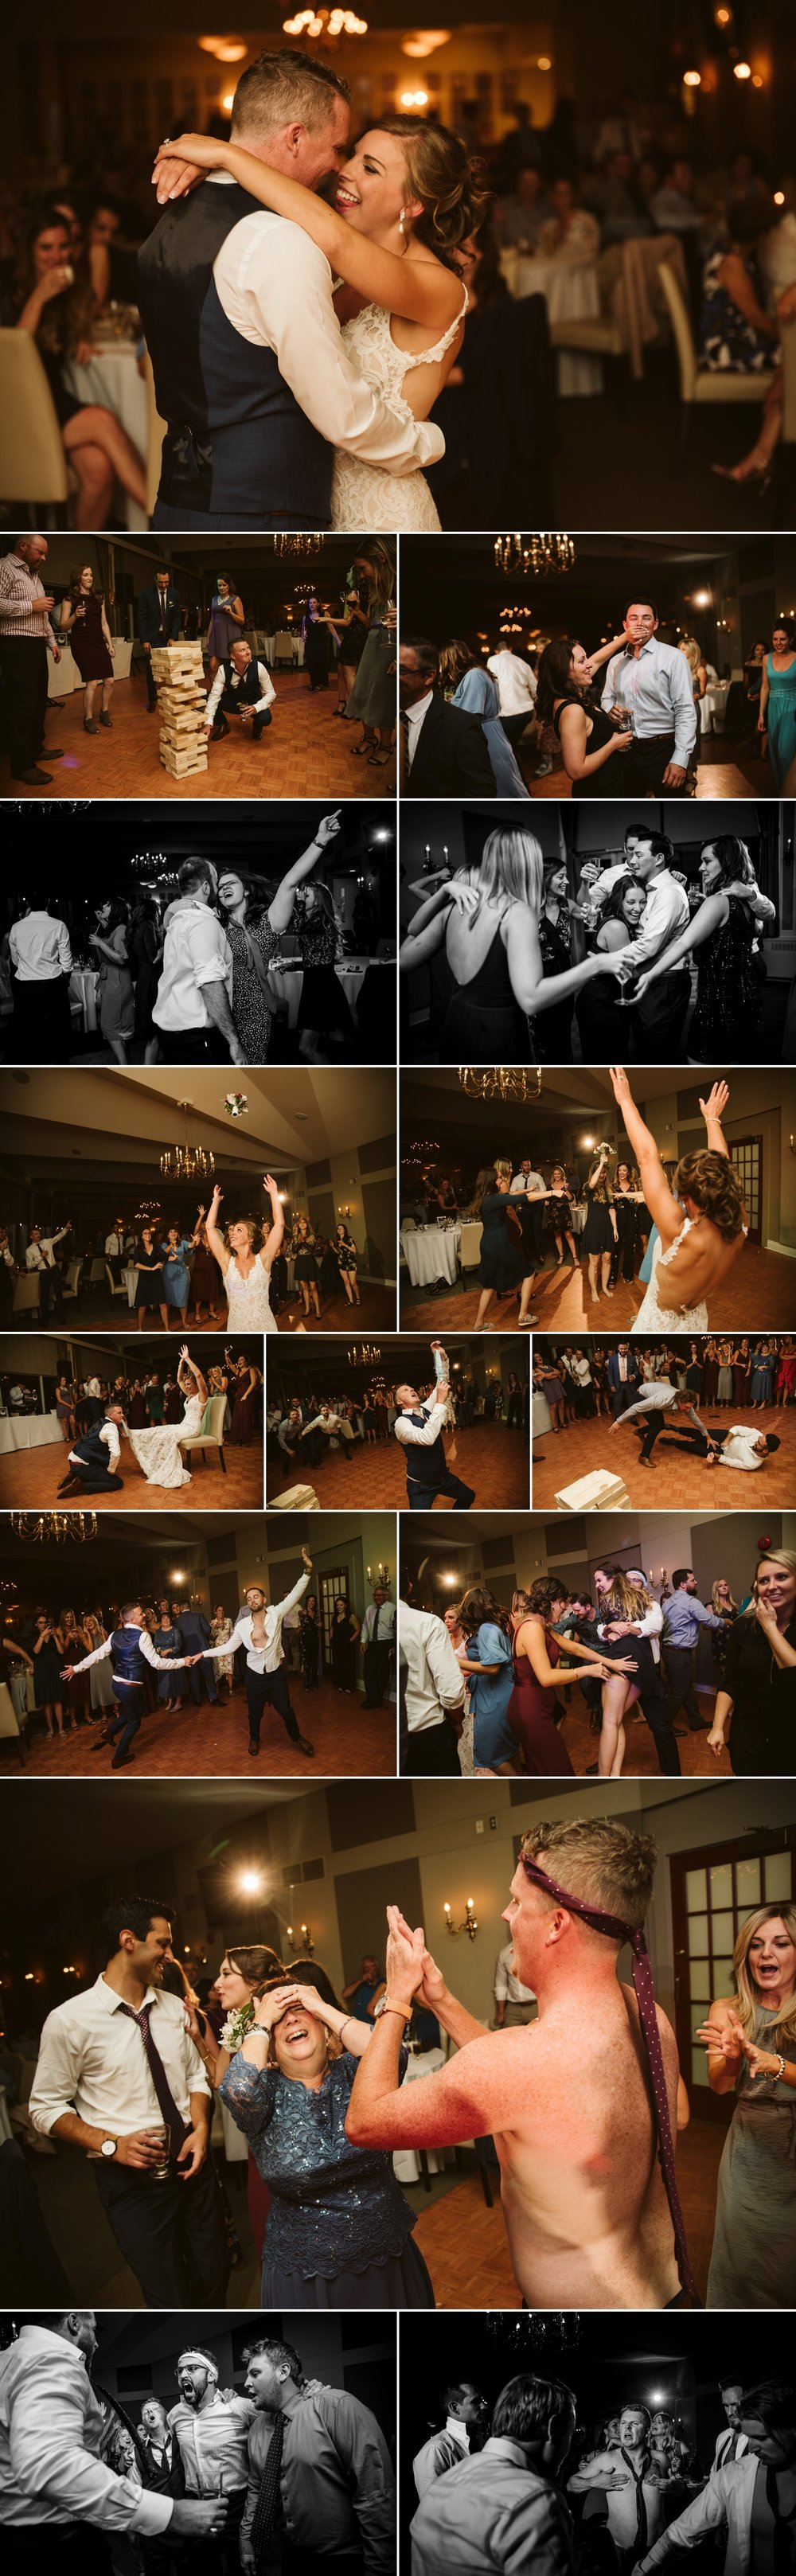 candid moments on the dance floor during a hunt and golf club wedding reception in ottawa ontario